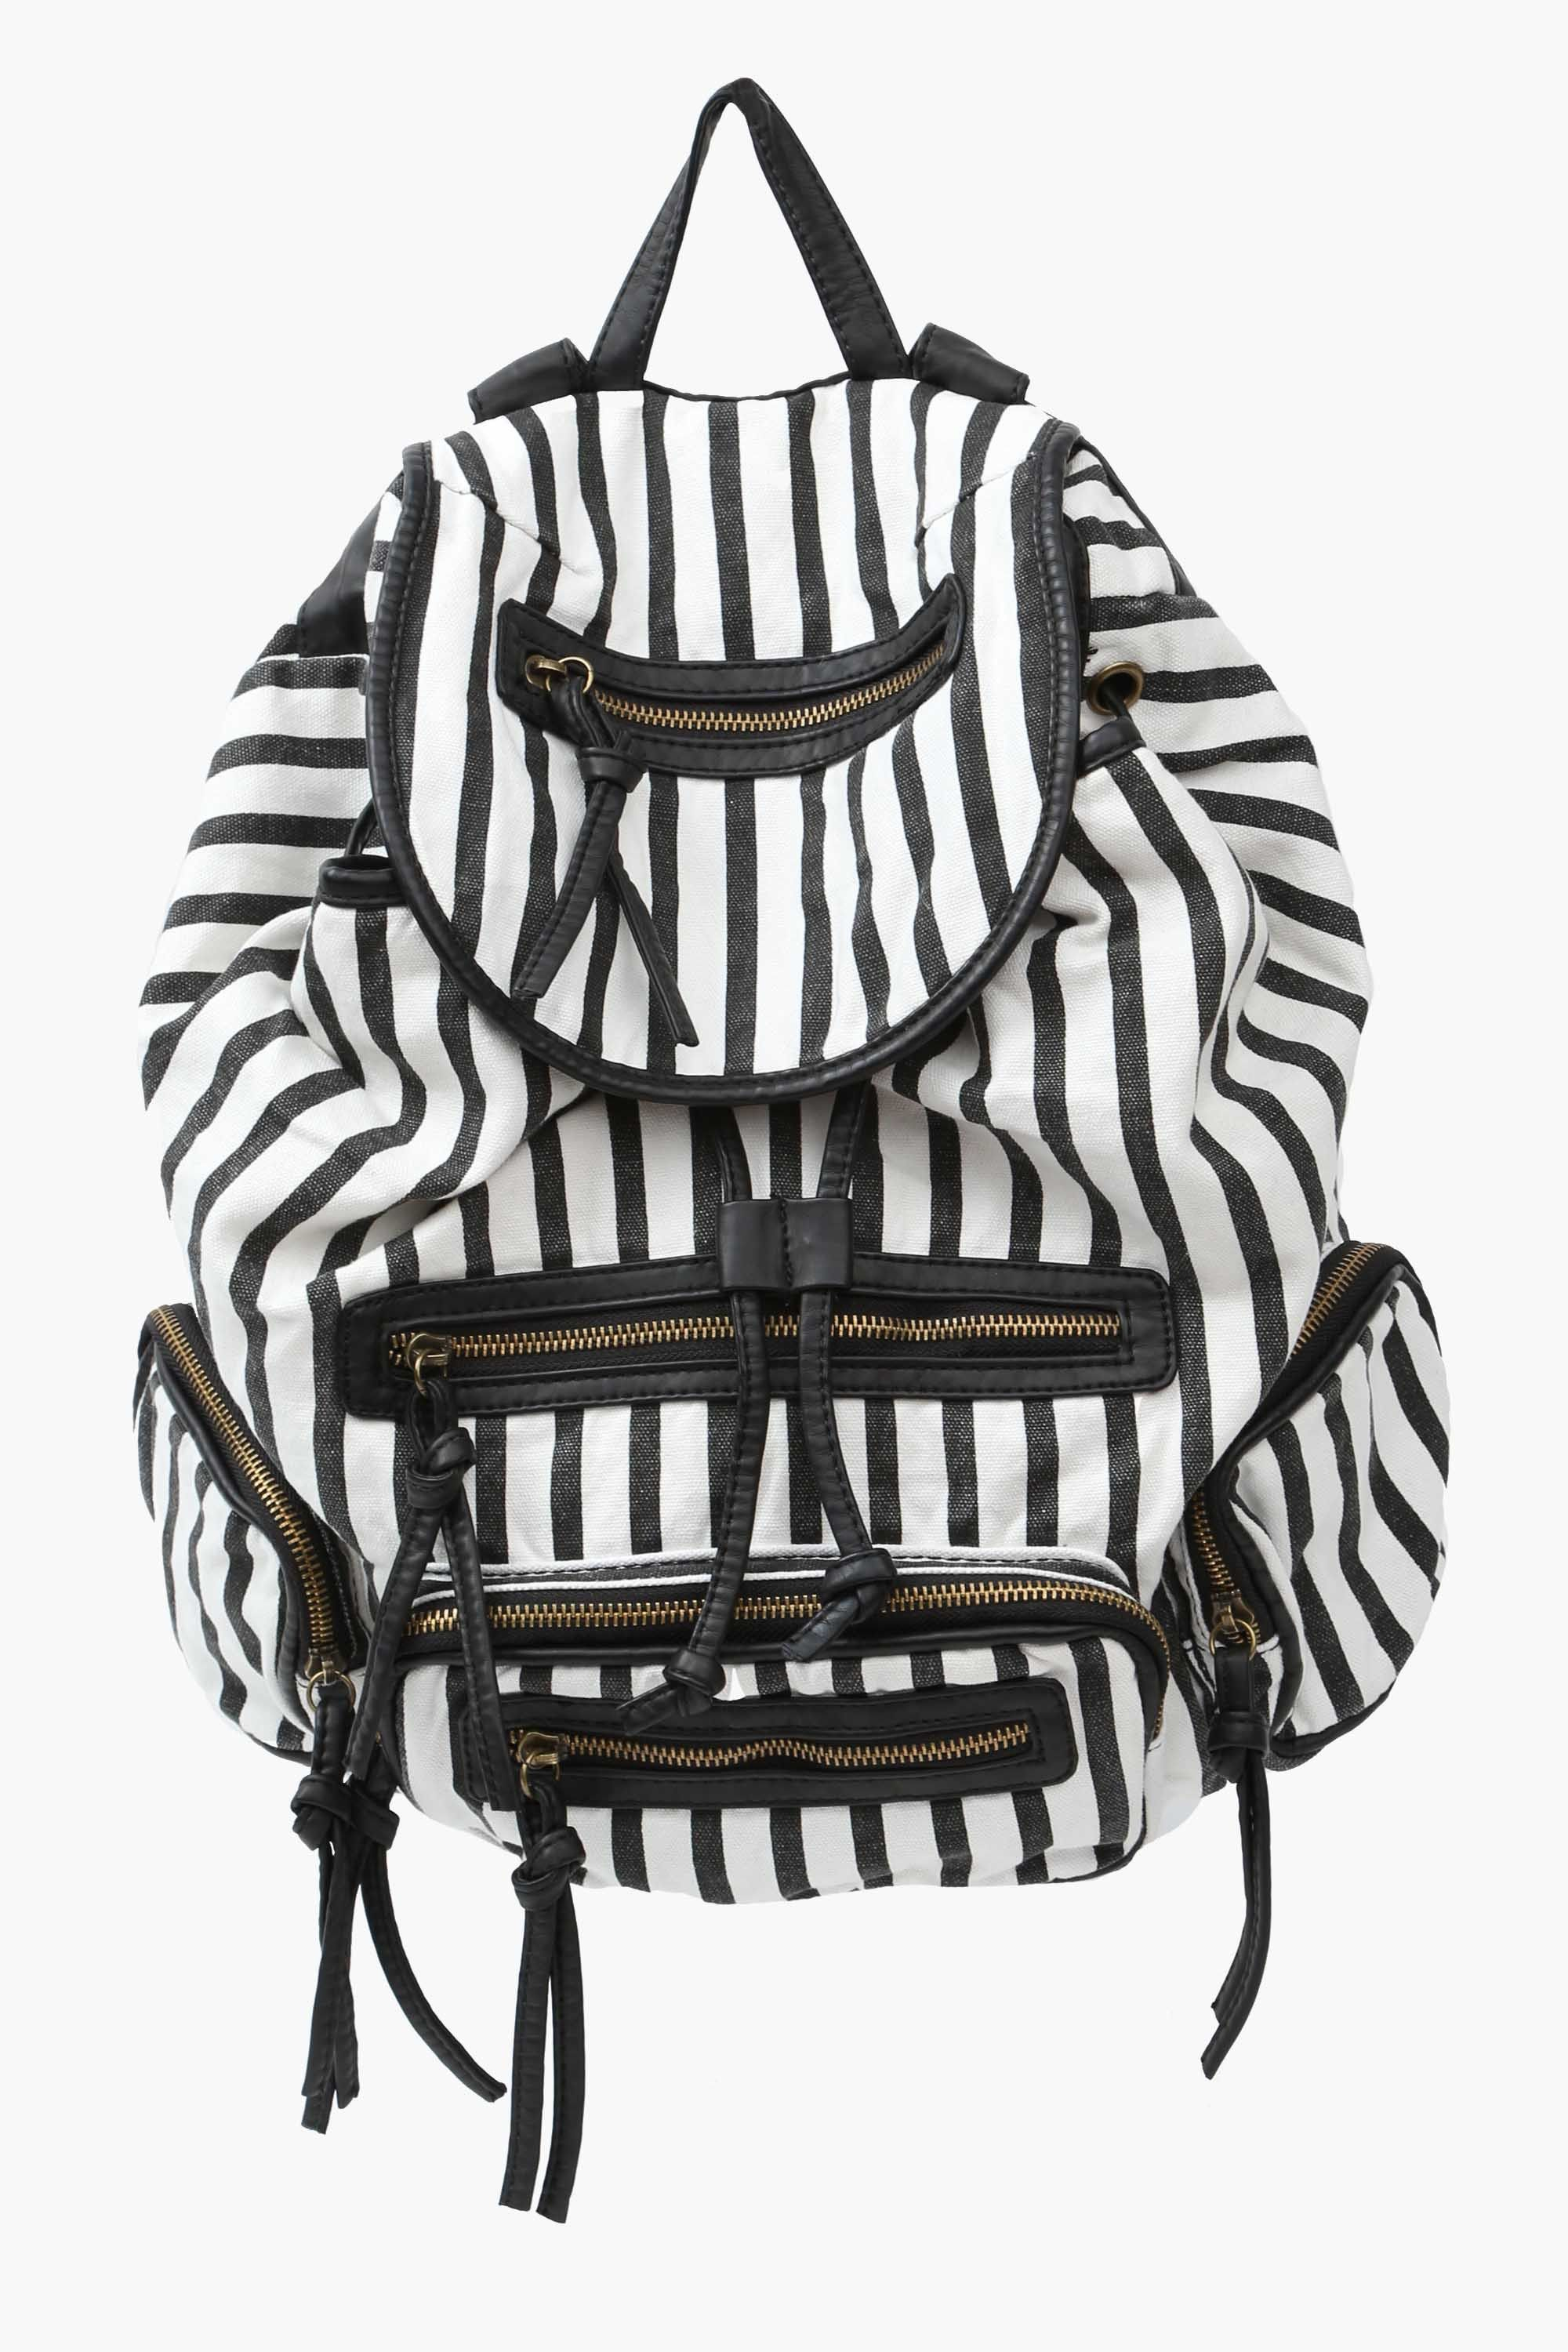 Striped Backpack Purse in White and Black